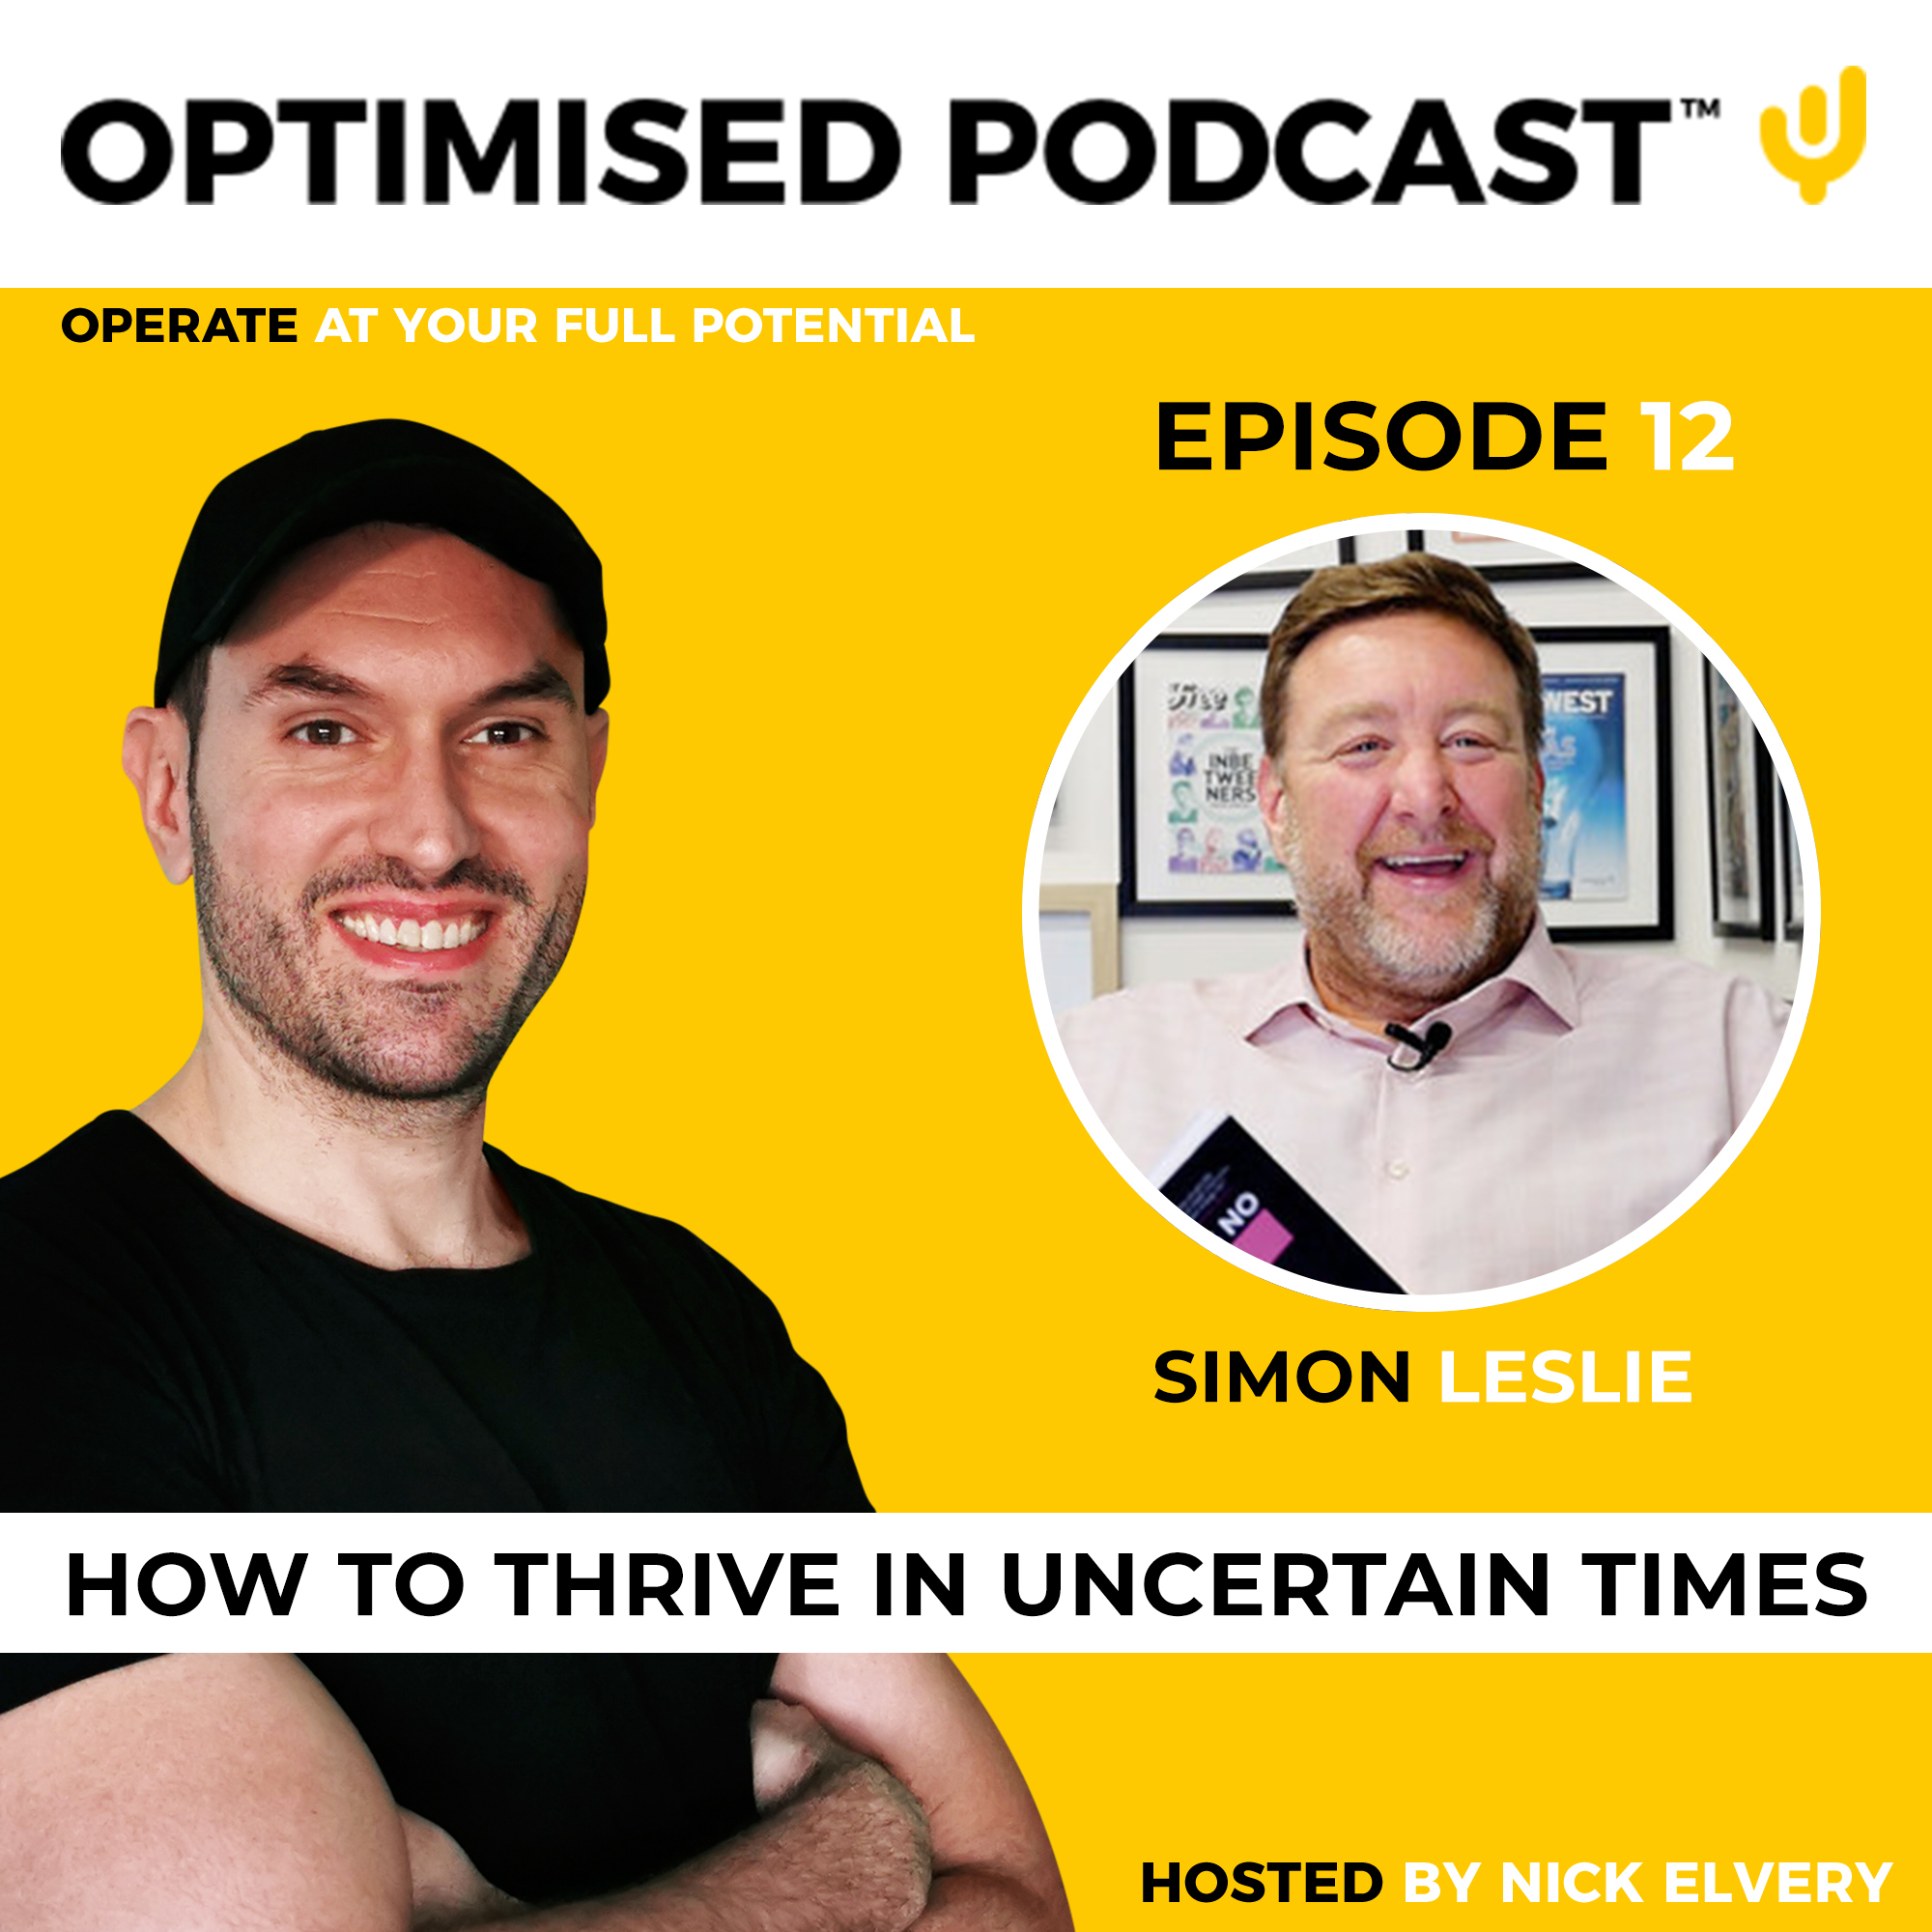 #12 - How to thrive in uncertain times with Simon Leslie